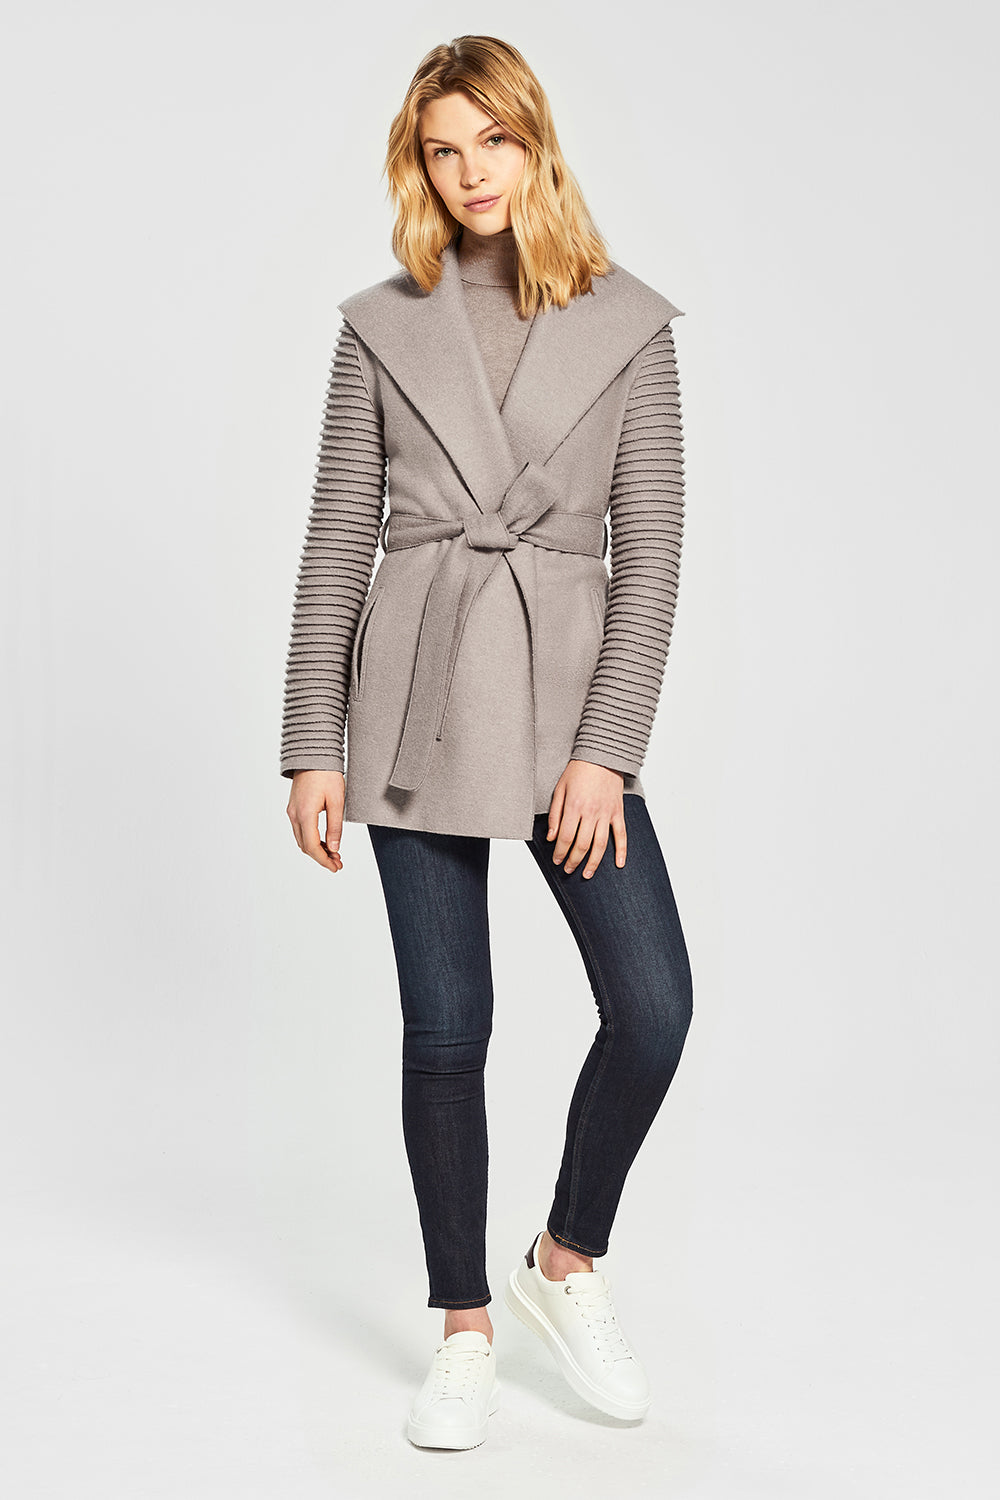 Sentaler Wrap Coat with Ribbed Sleeves featured in Superfine Alpaca and available in Simply Taupe. Seen from front.